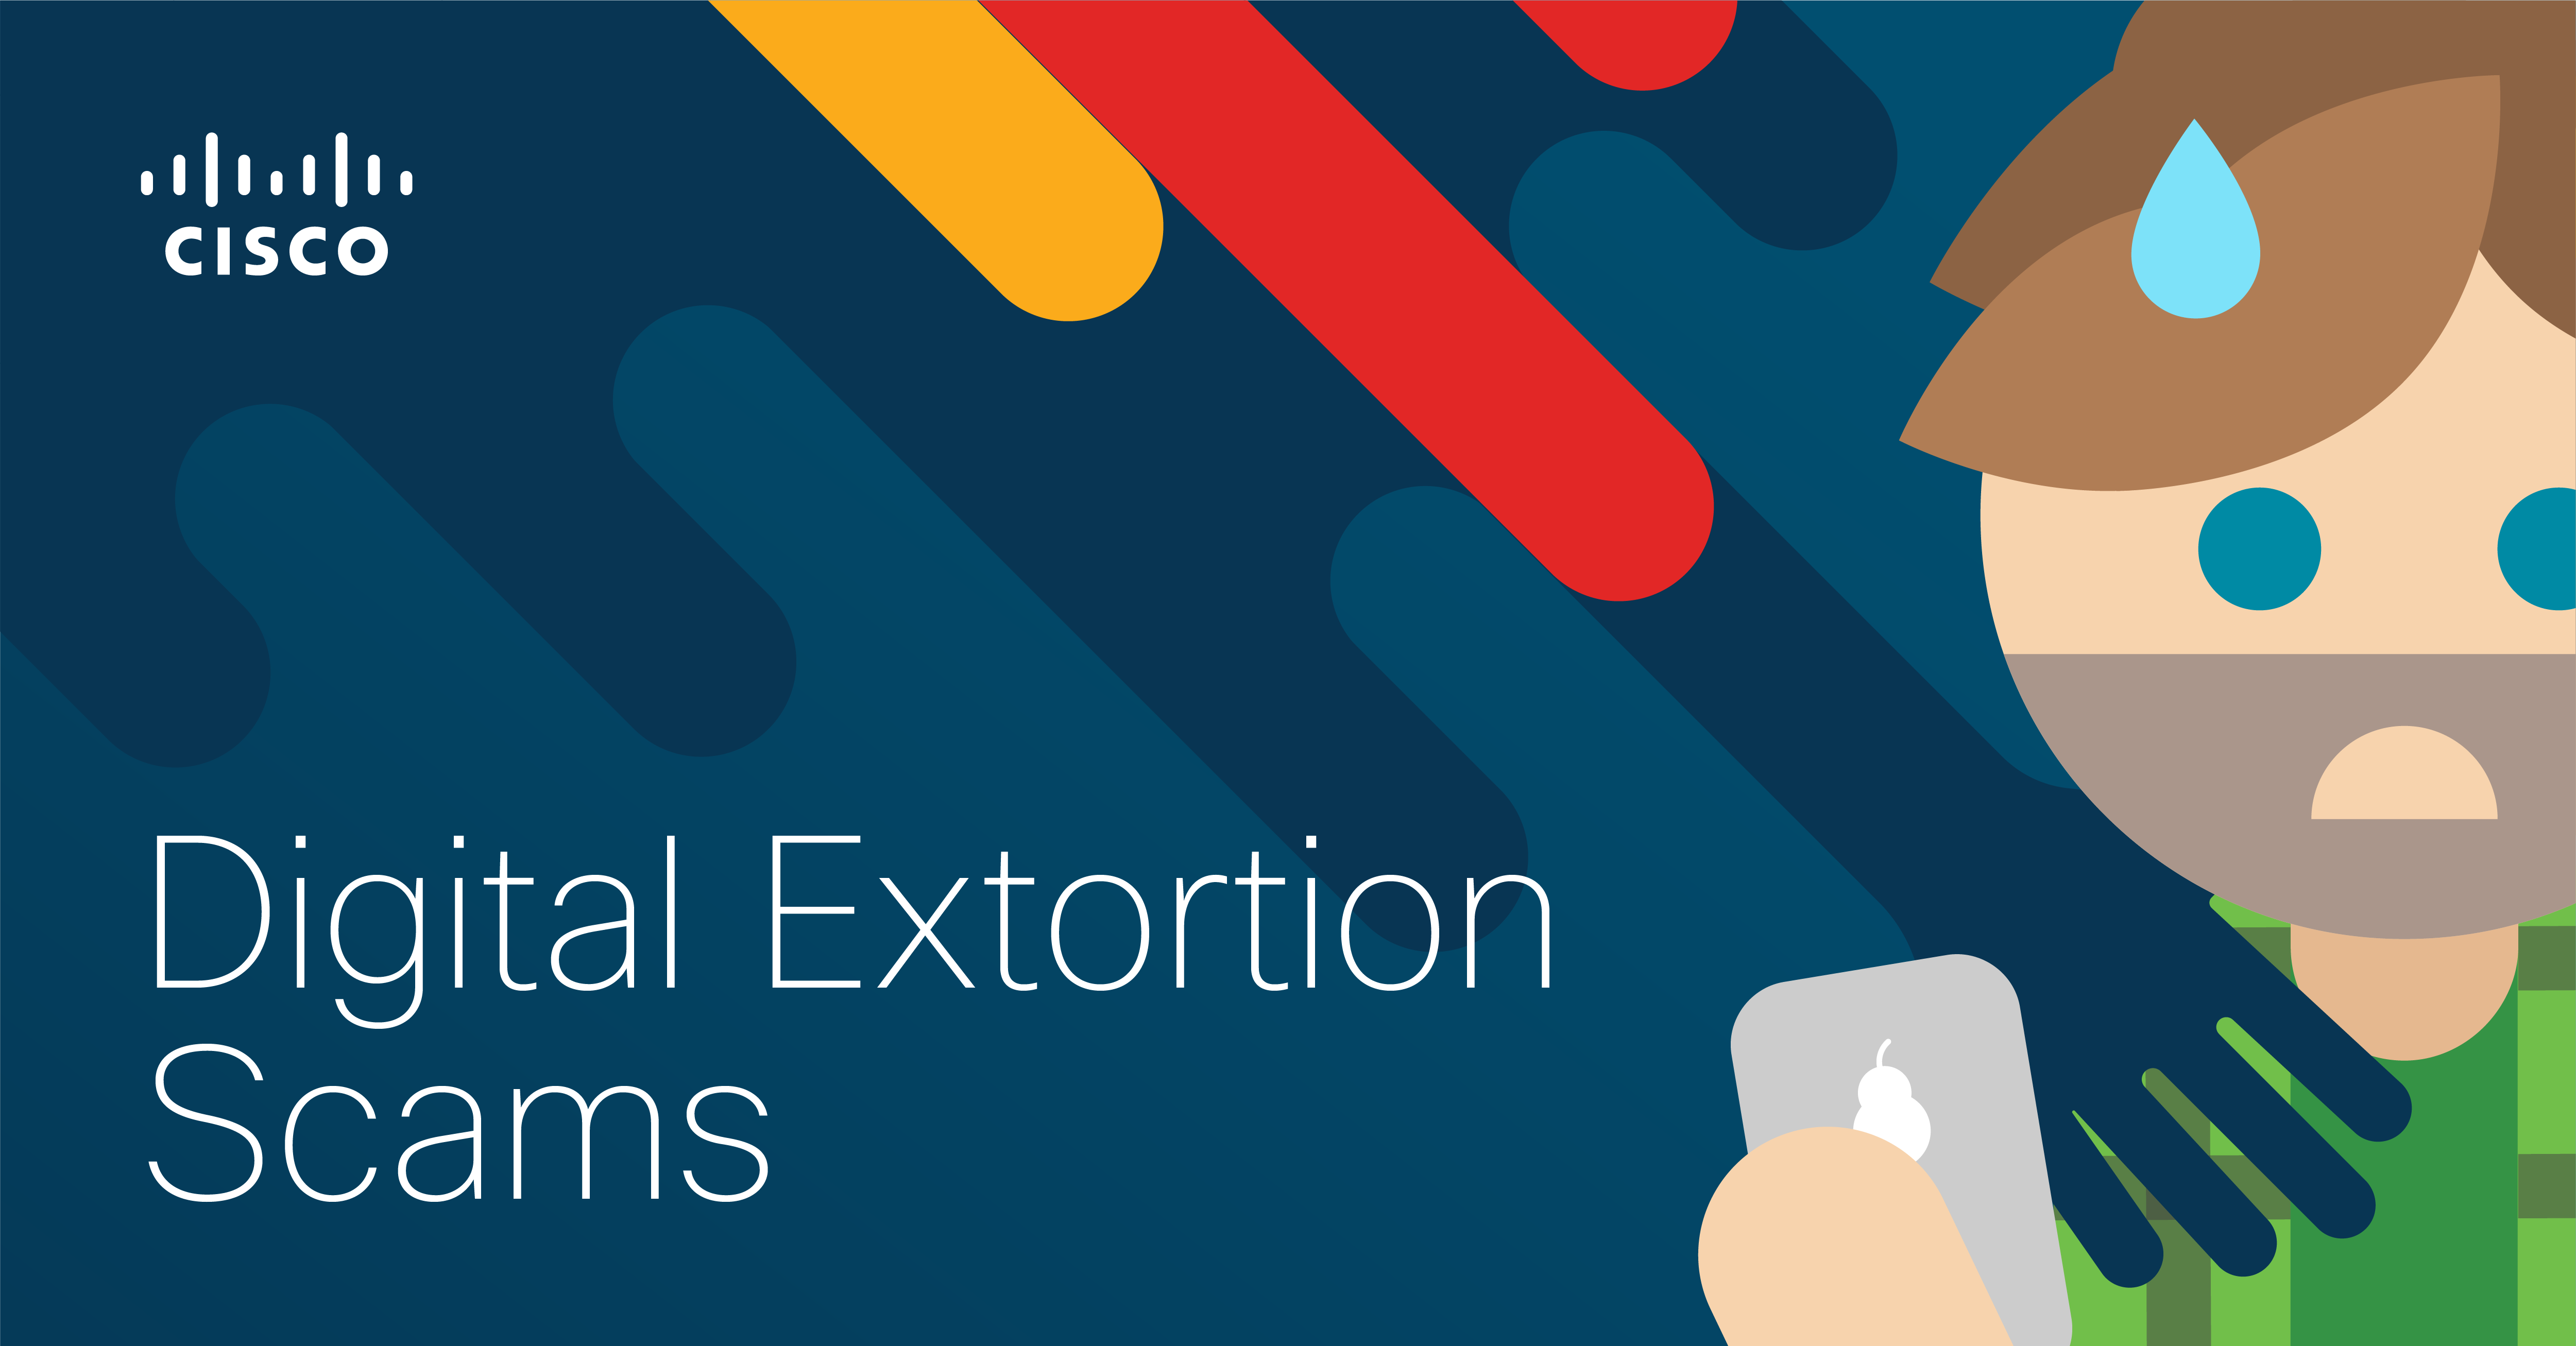 Your money or your life: Digital extortion scams